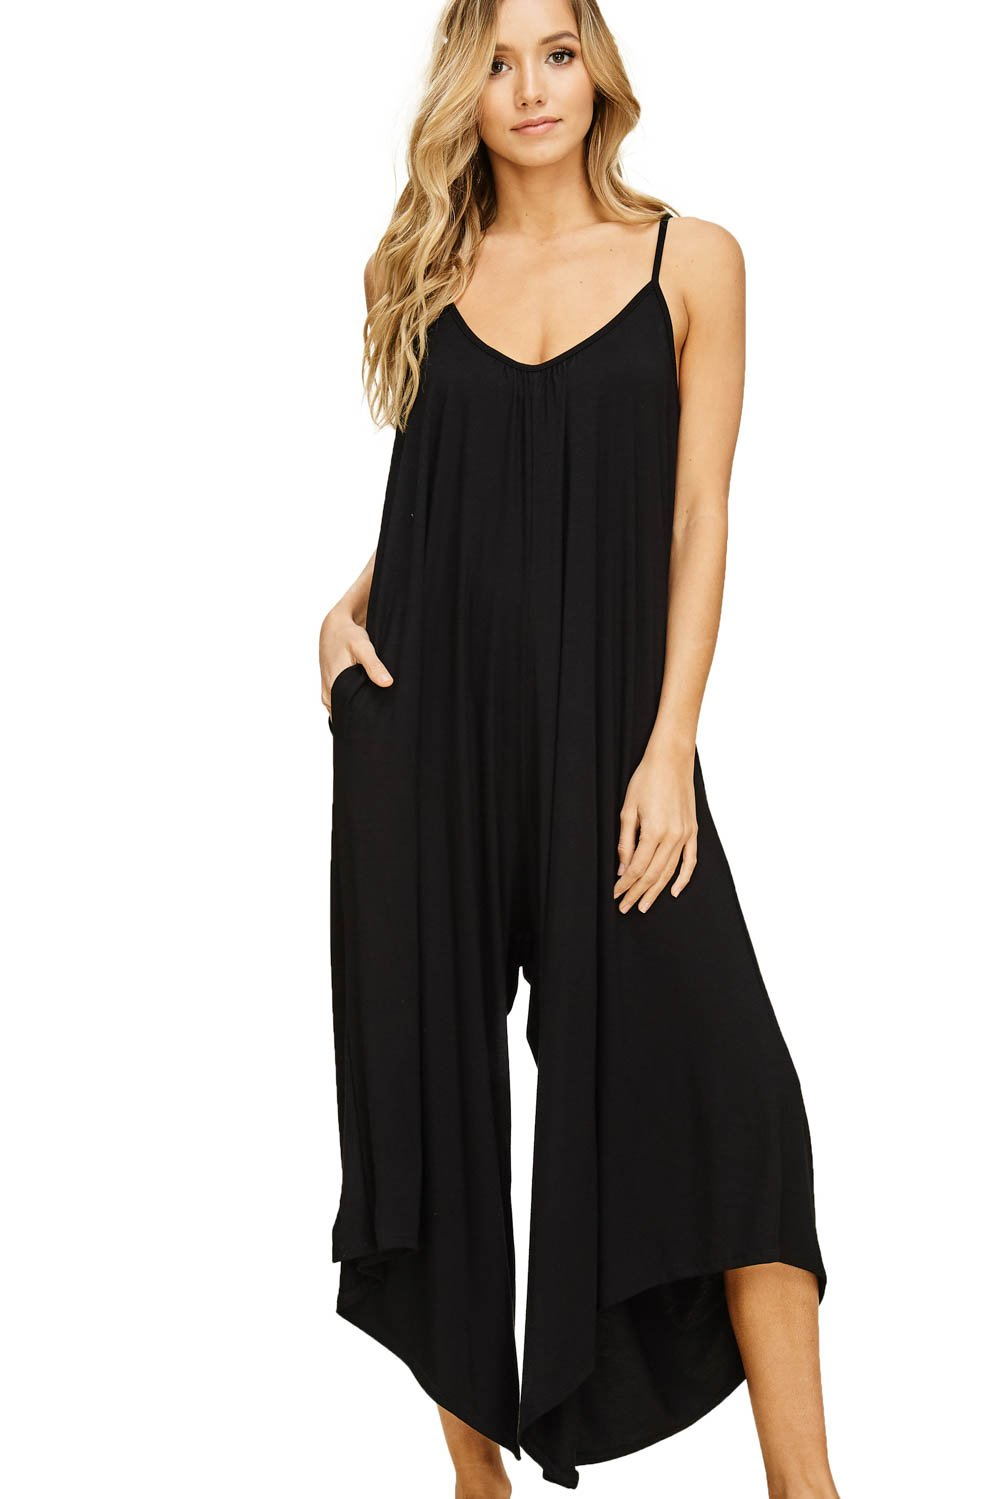 Annabelle Women's Sleeveless Strap V-Neck Wide Leg Jumpsuit with Pockets Black Small J8030